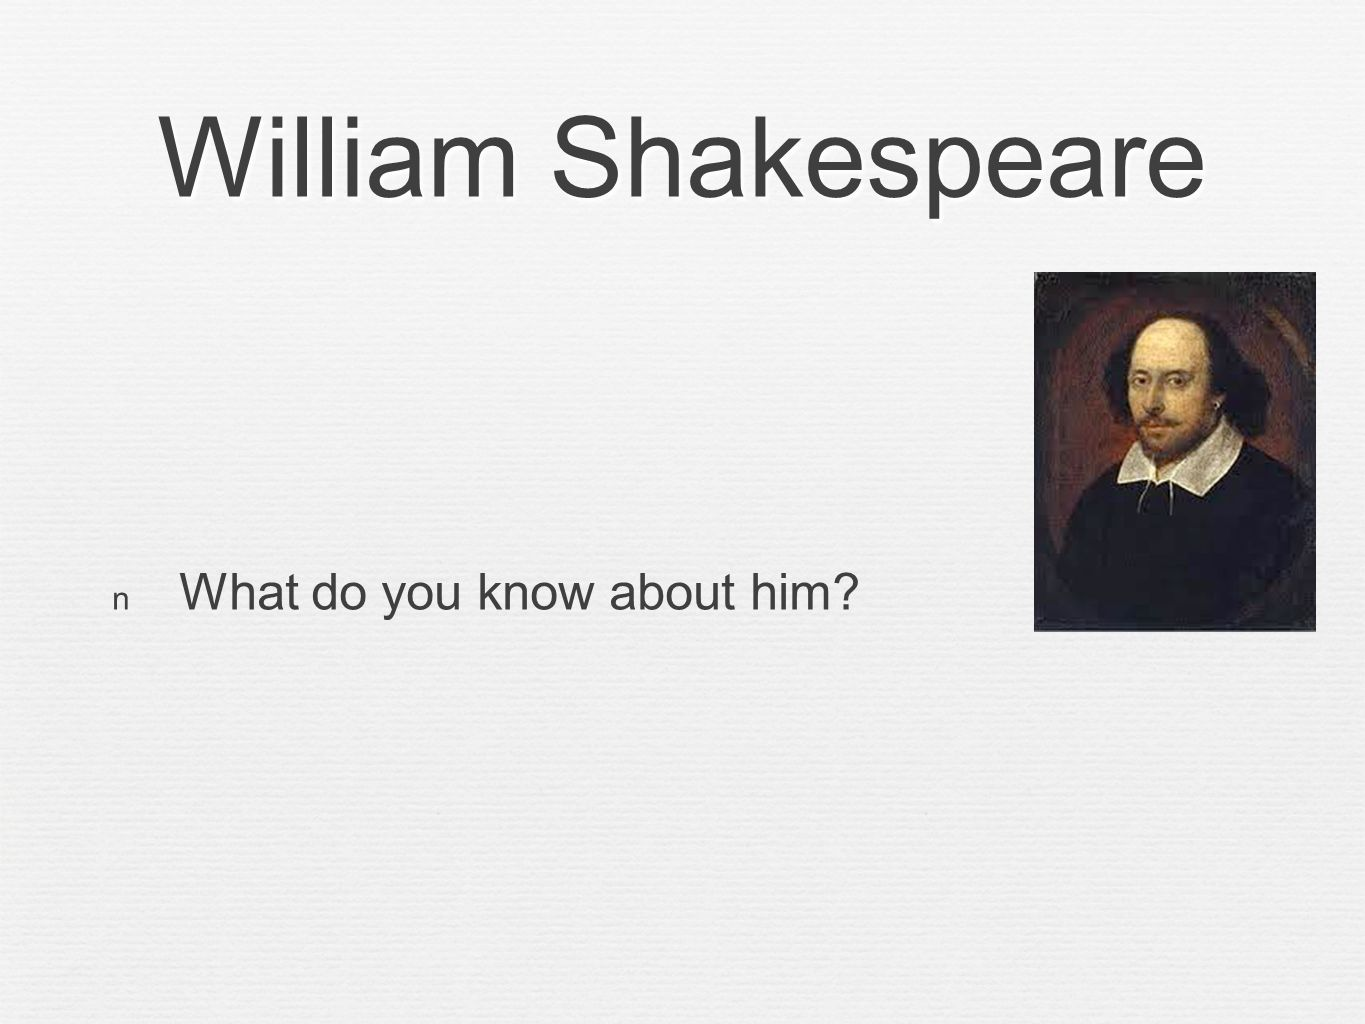 an overview and the purpose of the soliloquy in hamlet a play by william shakespeare Hamlet by william shakespeare - hamlet by william shakespeare act iv hamlet the life of william shakespeare - william shakespeare was one of the greatest play.